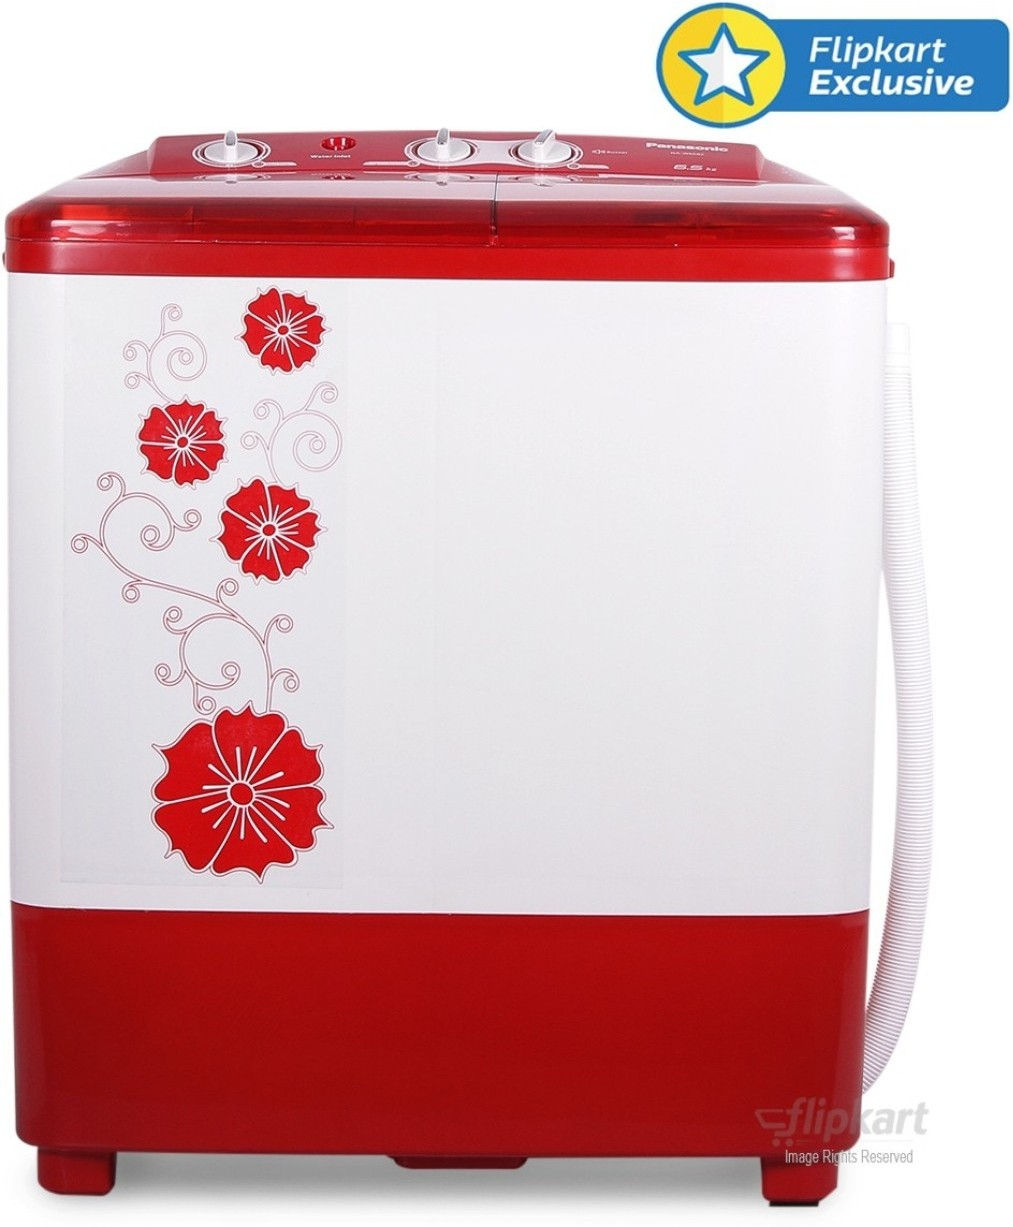 Deals - Raipur - Just Rs.7,990 <br> Panasonic 6.5 kg Washing Machine<br> Category - home_kitchen<br> Business - Flipkart.com